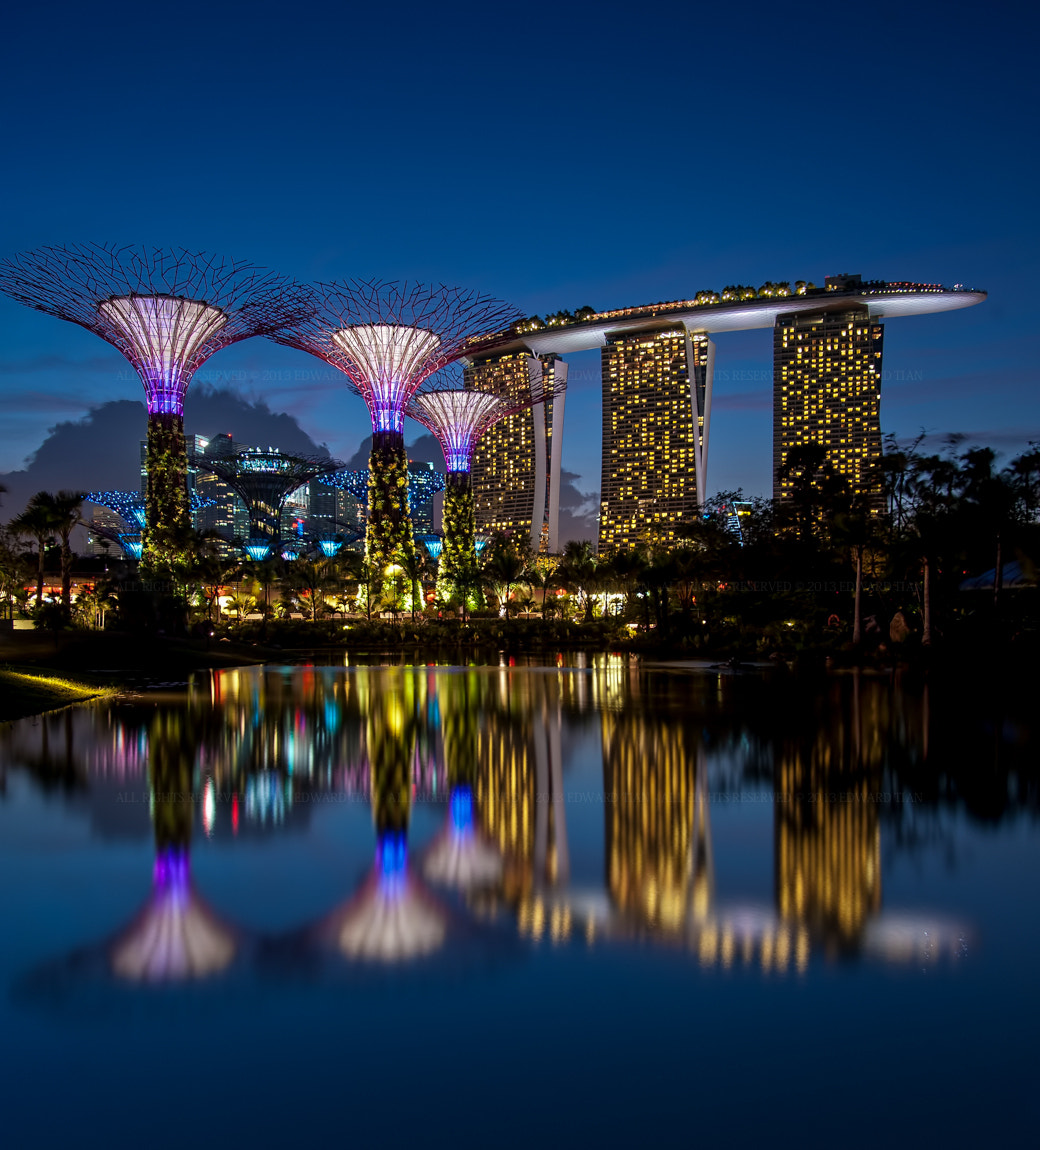 Photograph Gardens by the Bay by Edward Tian on 500px